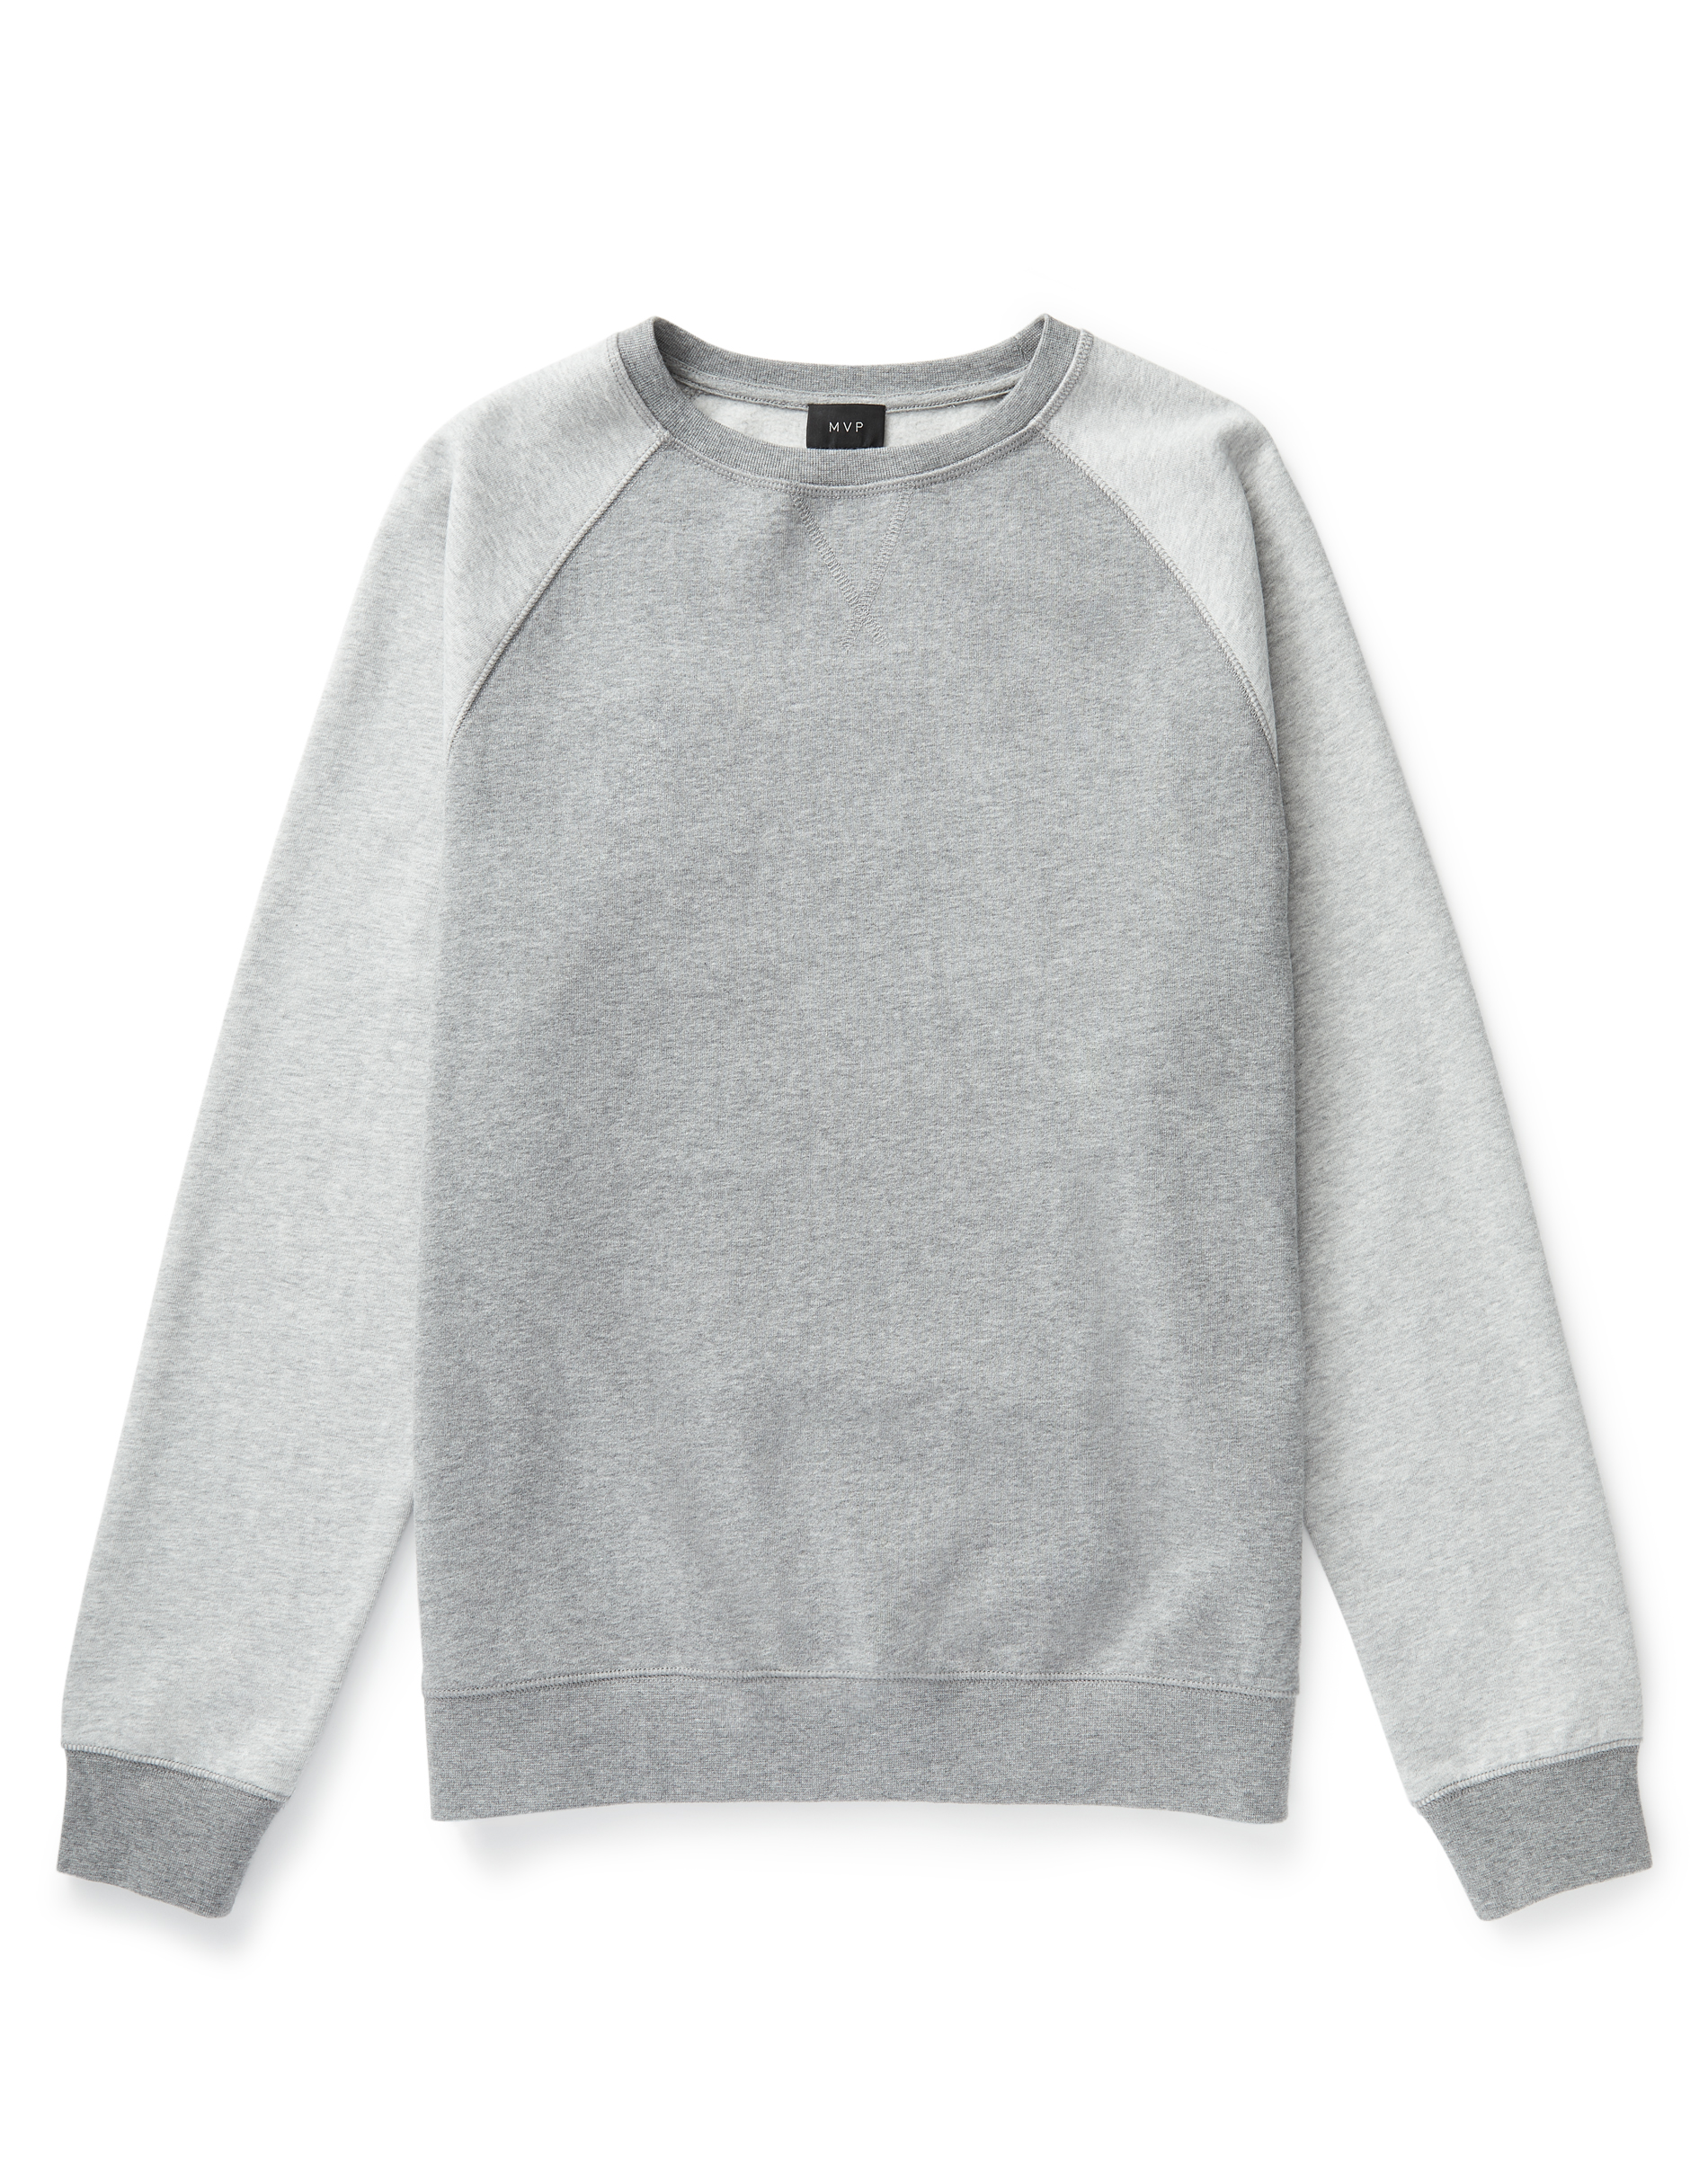 MVP Grey Hartley Raglan Colour Block Sweatshirt